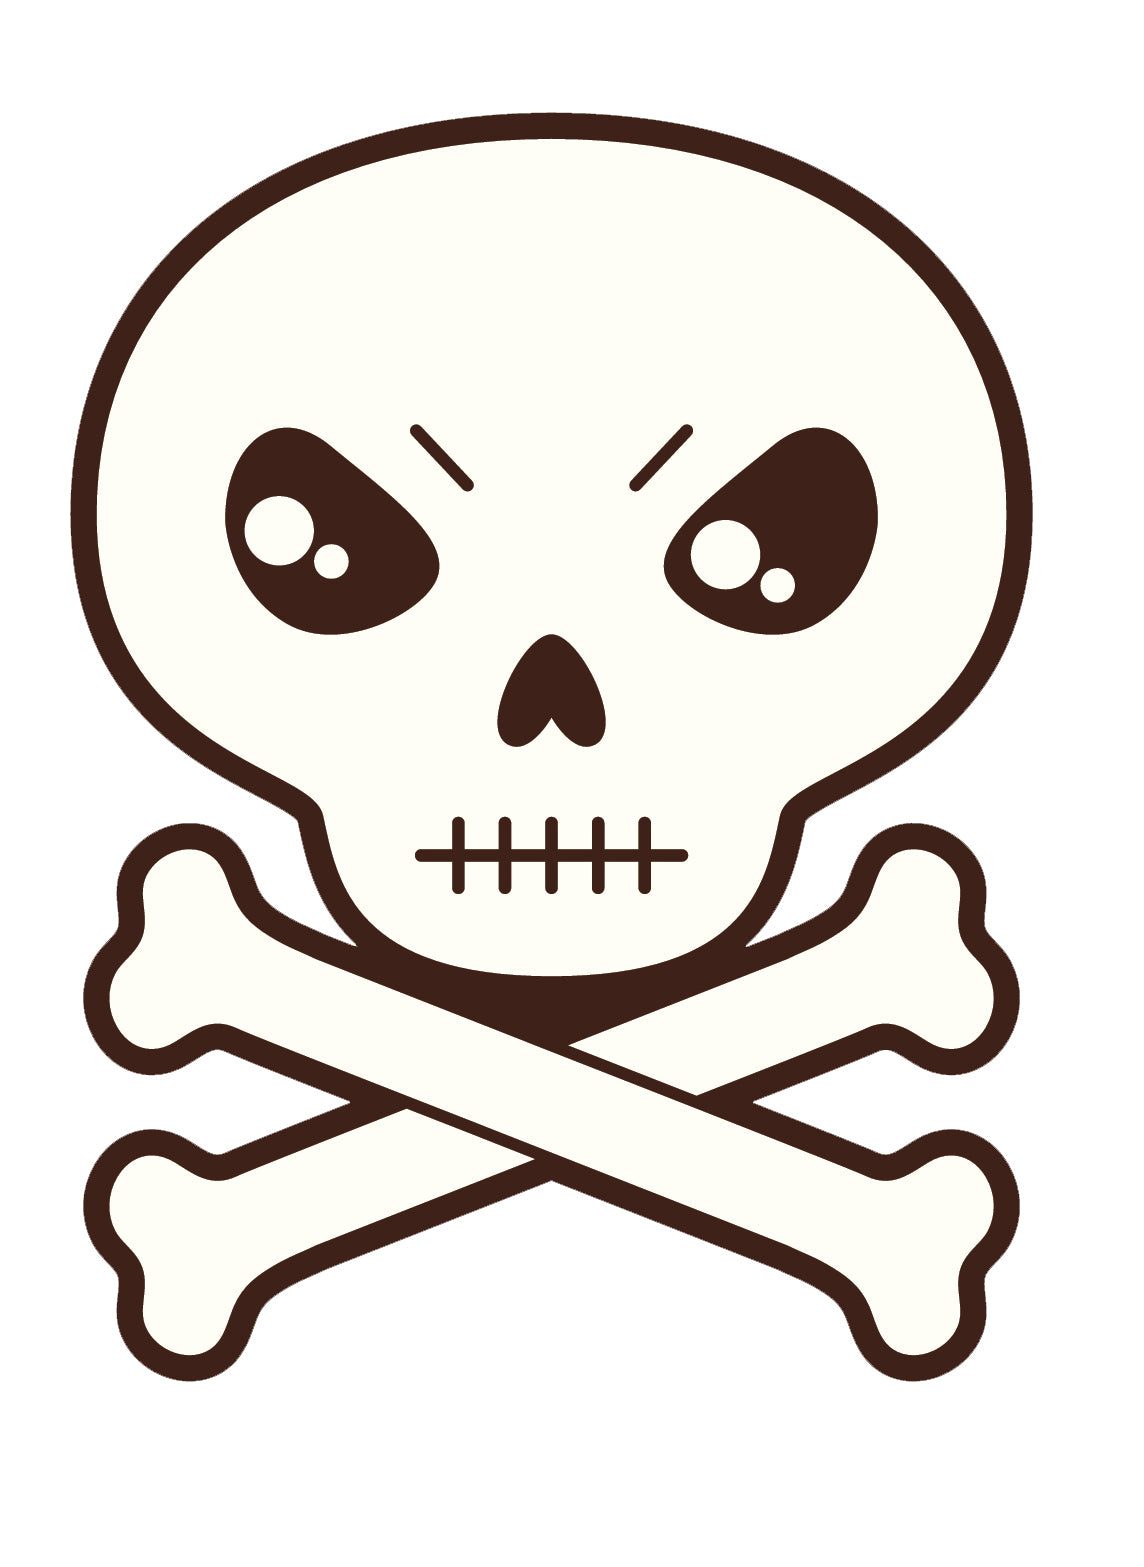 Skull and Cross Bones  Cartoon - Stern Icon Vinyl Decal Sticker